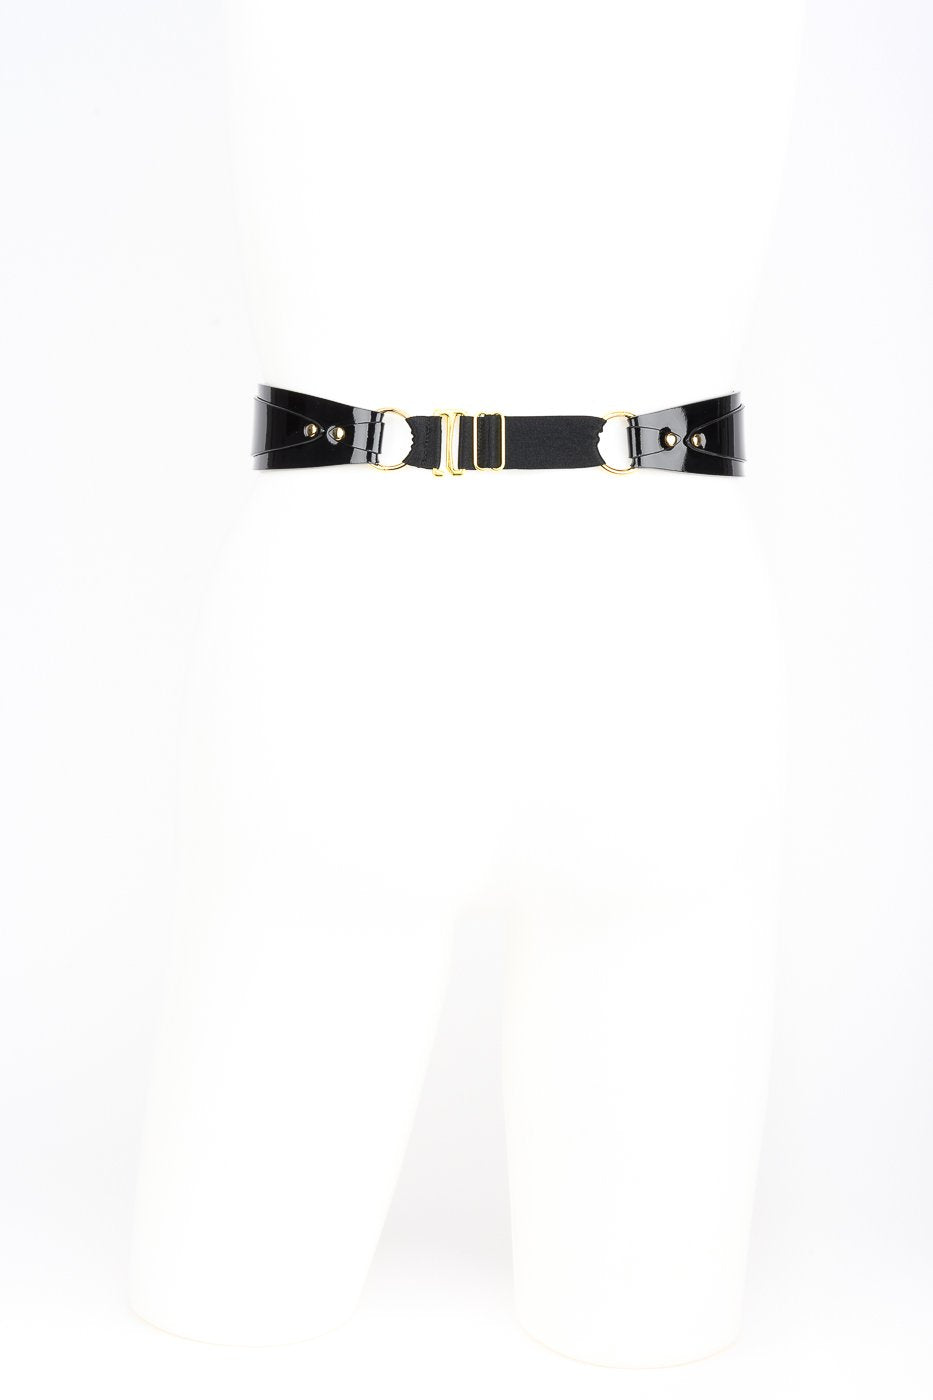 Sex Belt in Black Patent Leather by Fraulein Kink